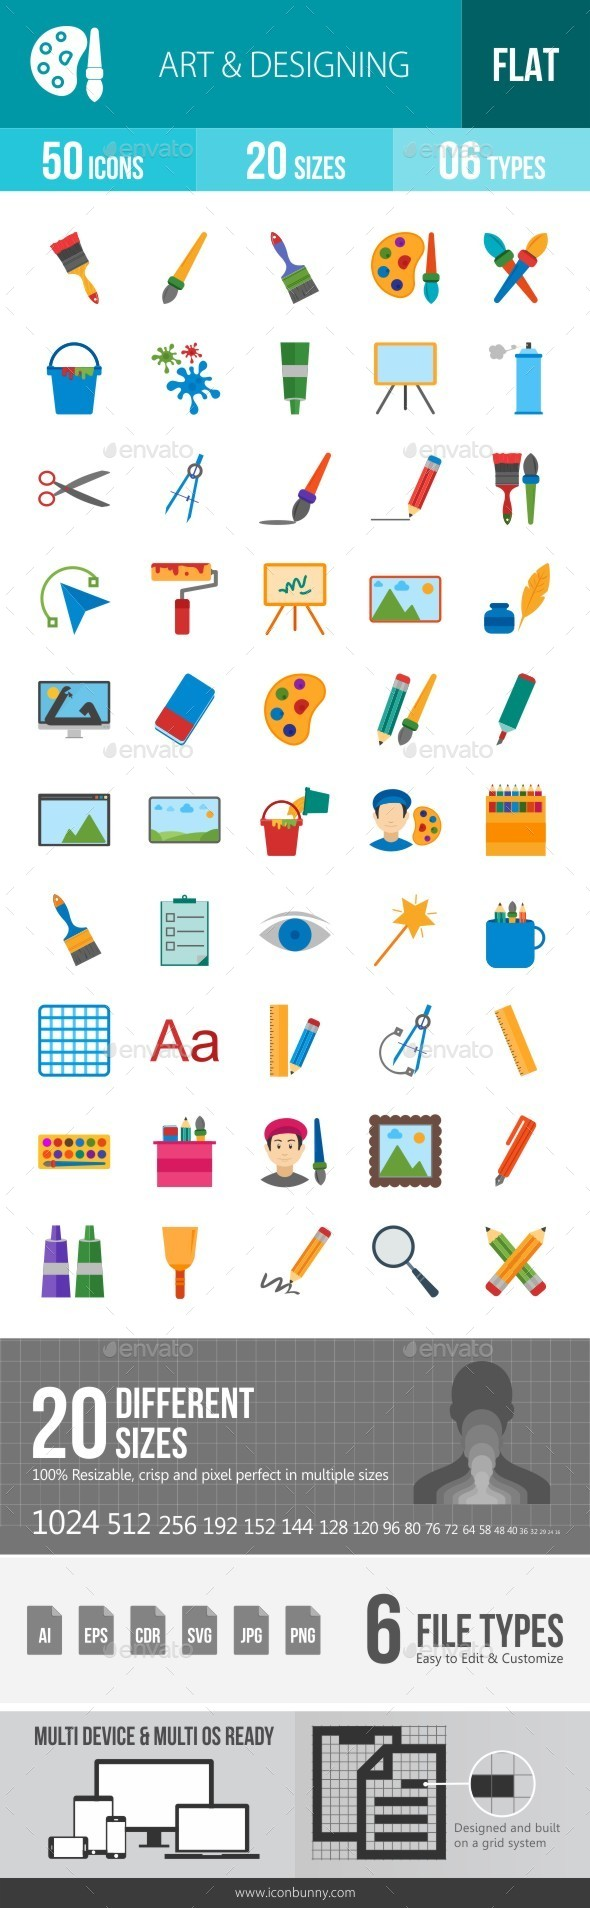 Art & Designing Flat Multicolor Icons - Icons